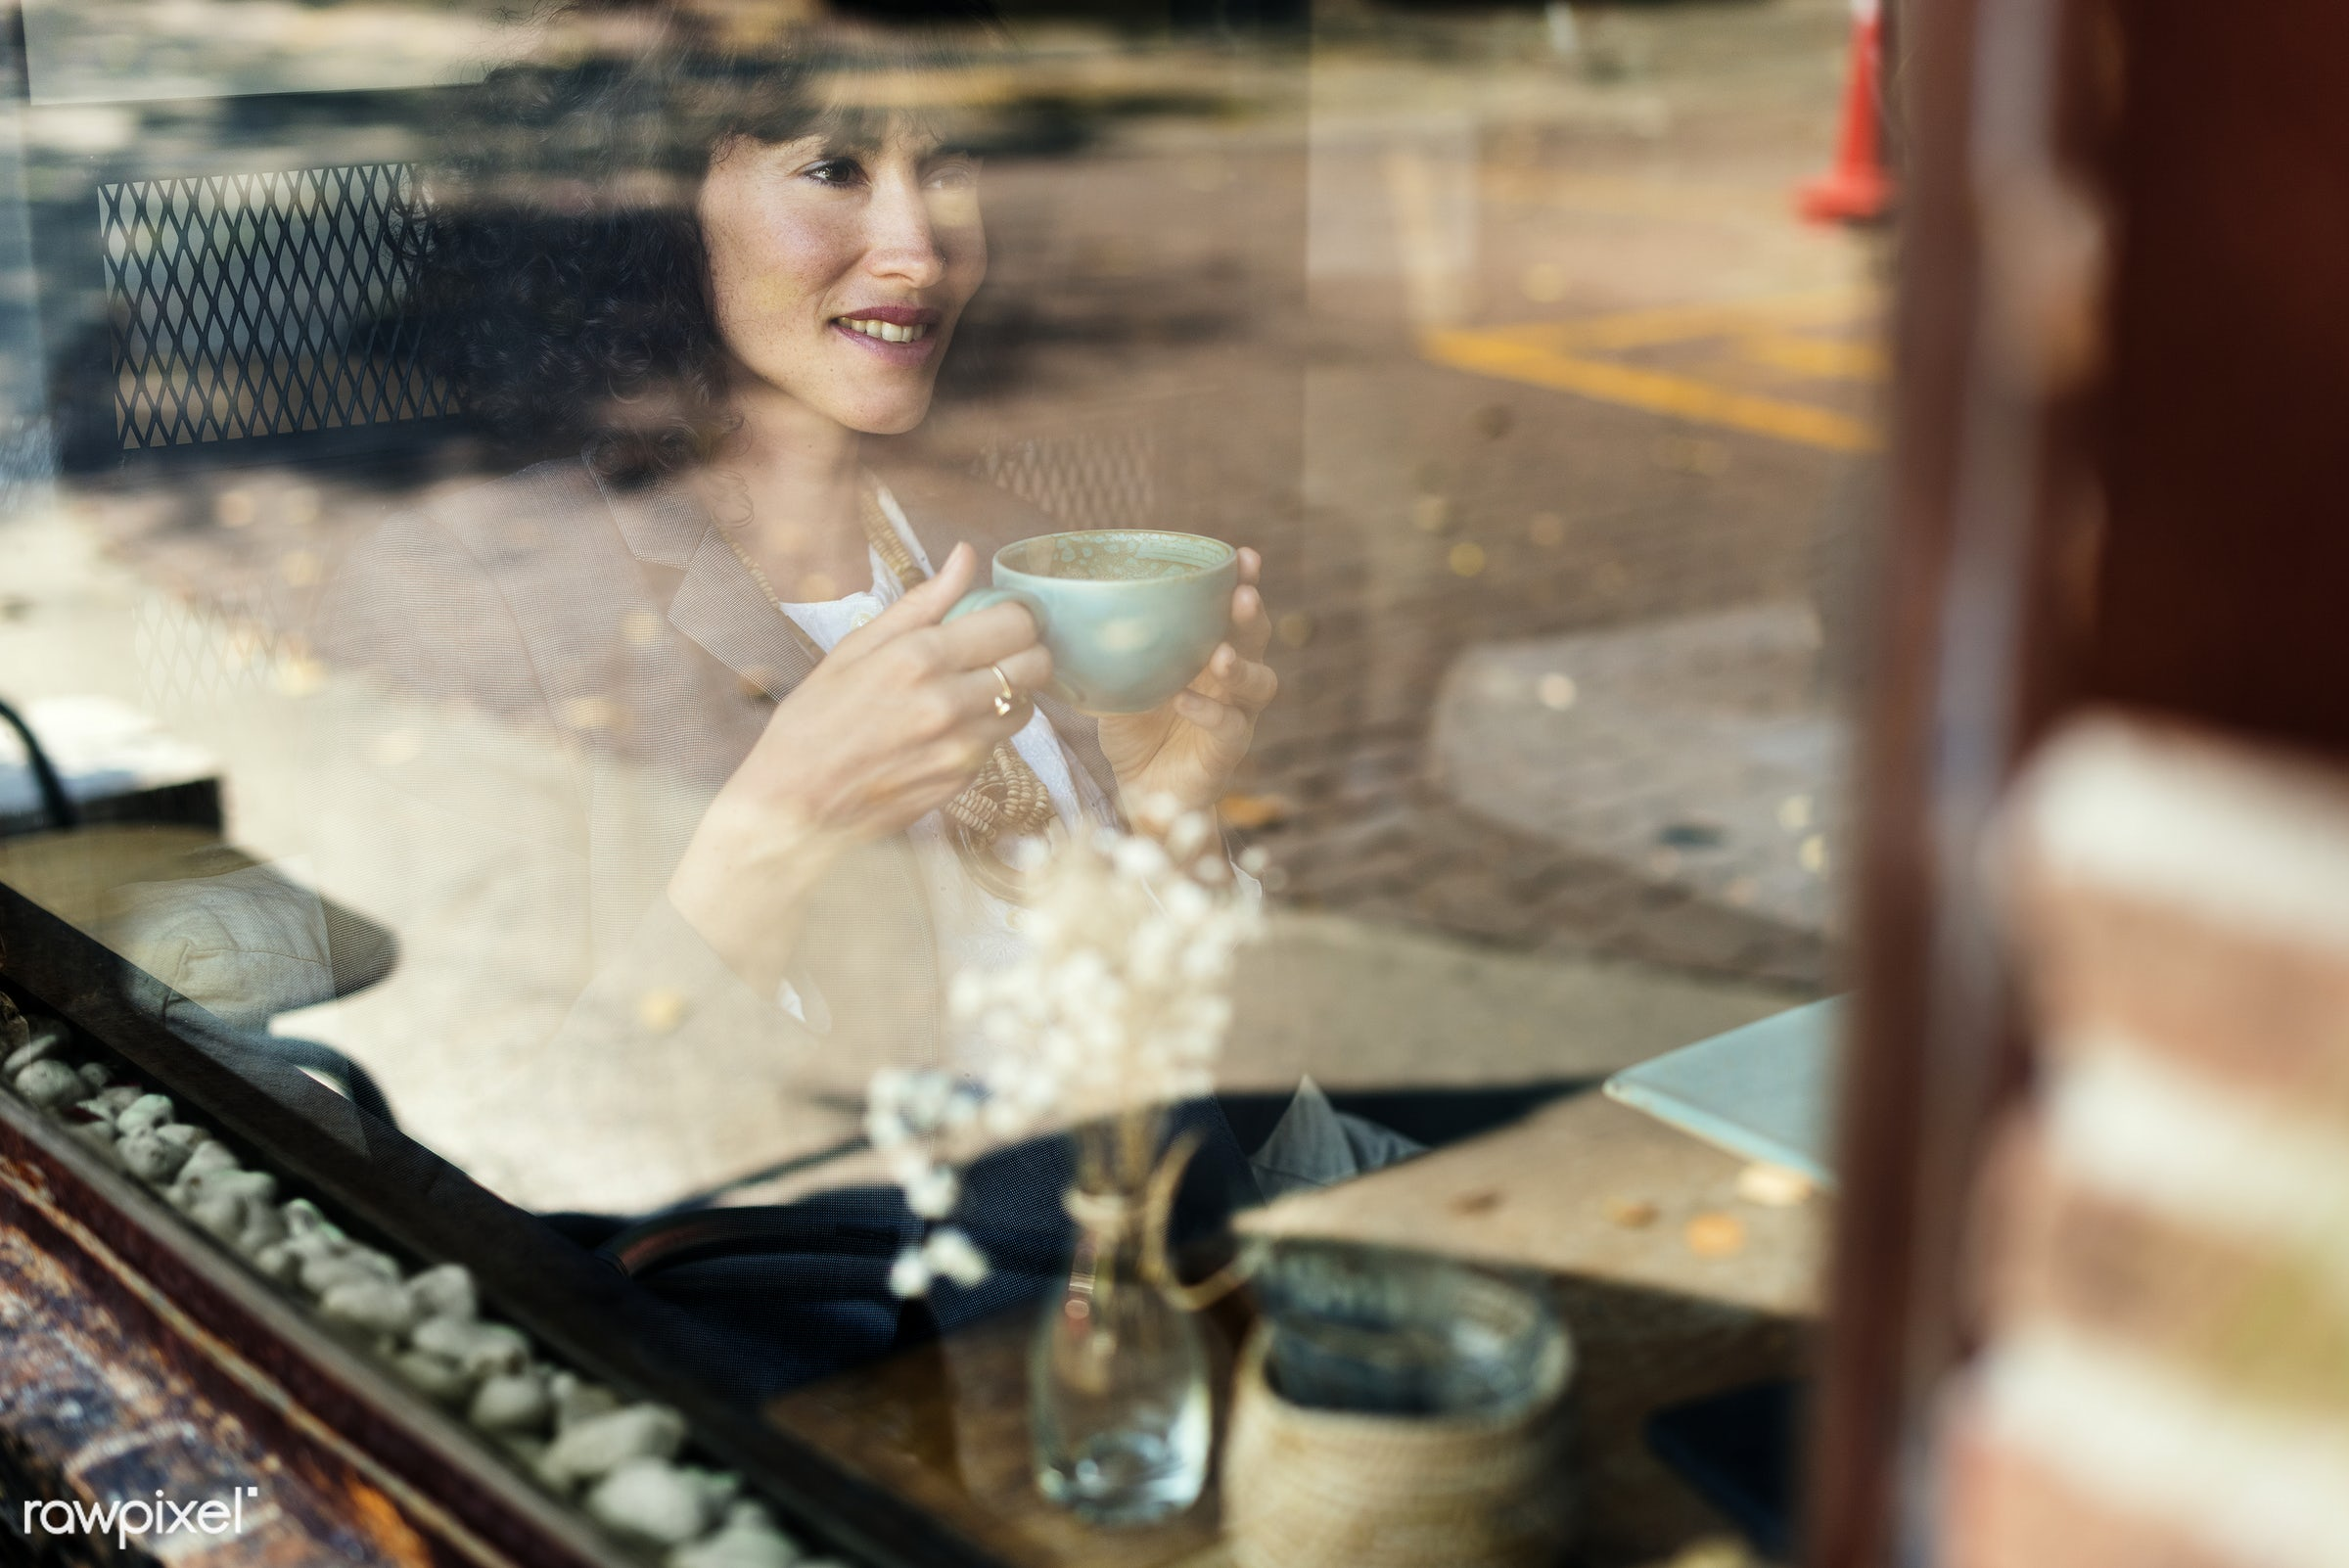 coffee, restaurant, woman, beverage, break, cafe, cc0, creative common 0, creative commons 0, cup, drinks, leisure, pastime...